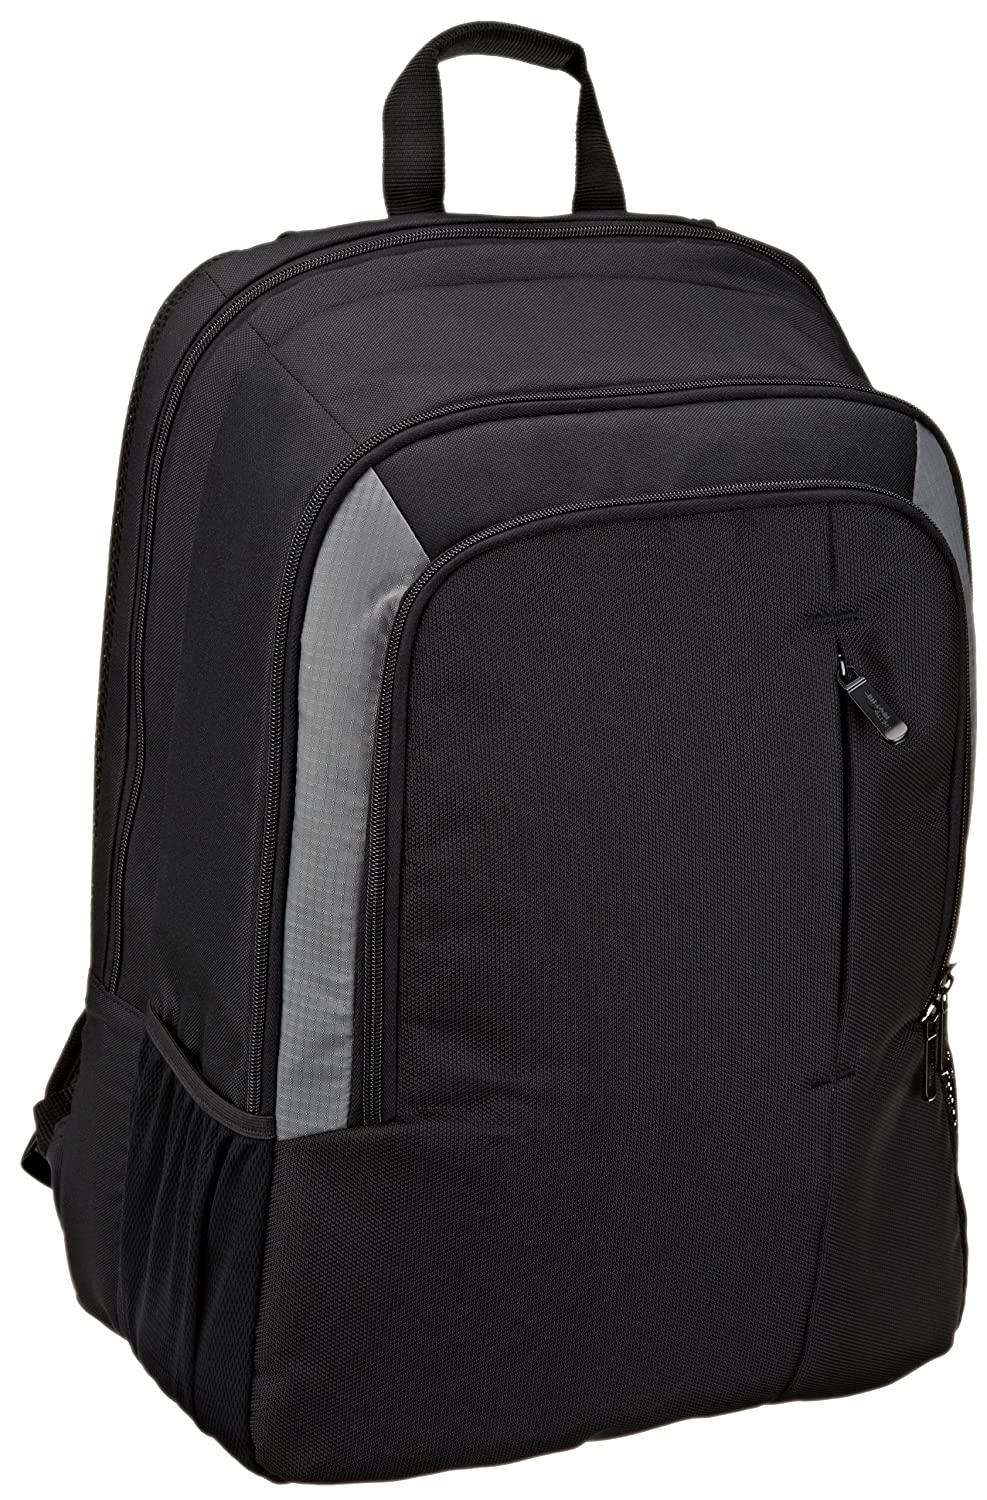 AmazonBasics Laptop Backpack - Fits Up To 15-Inch Laptops NC1211147R1